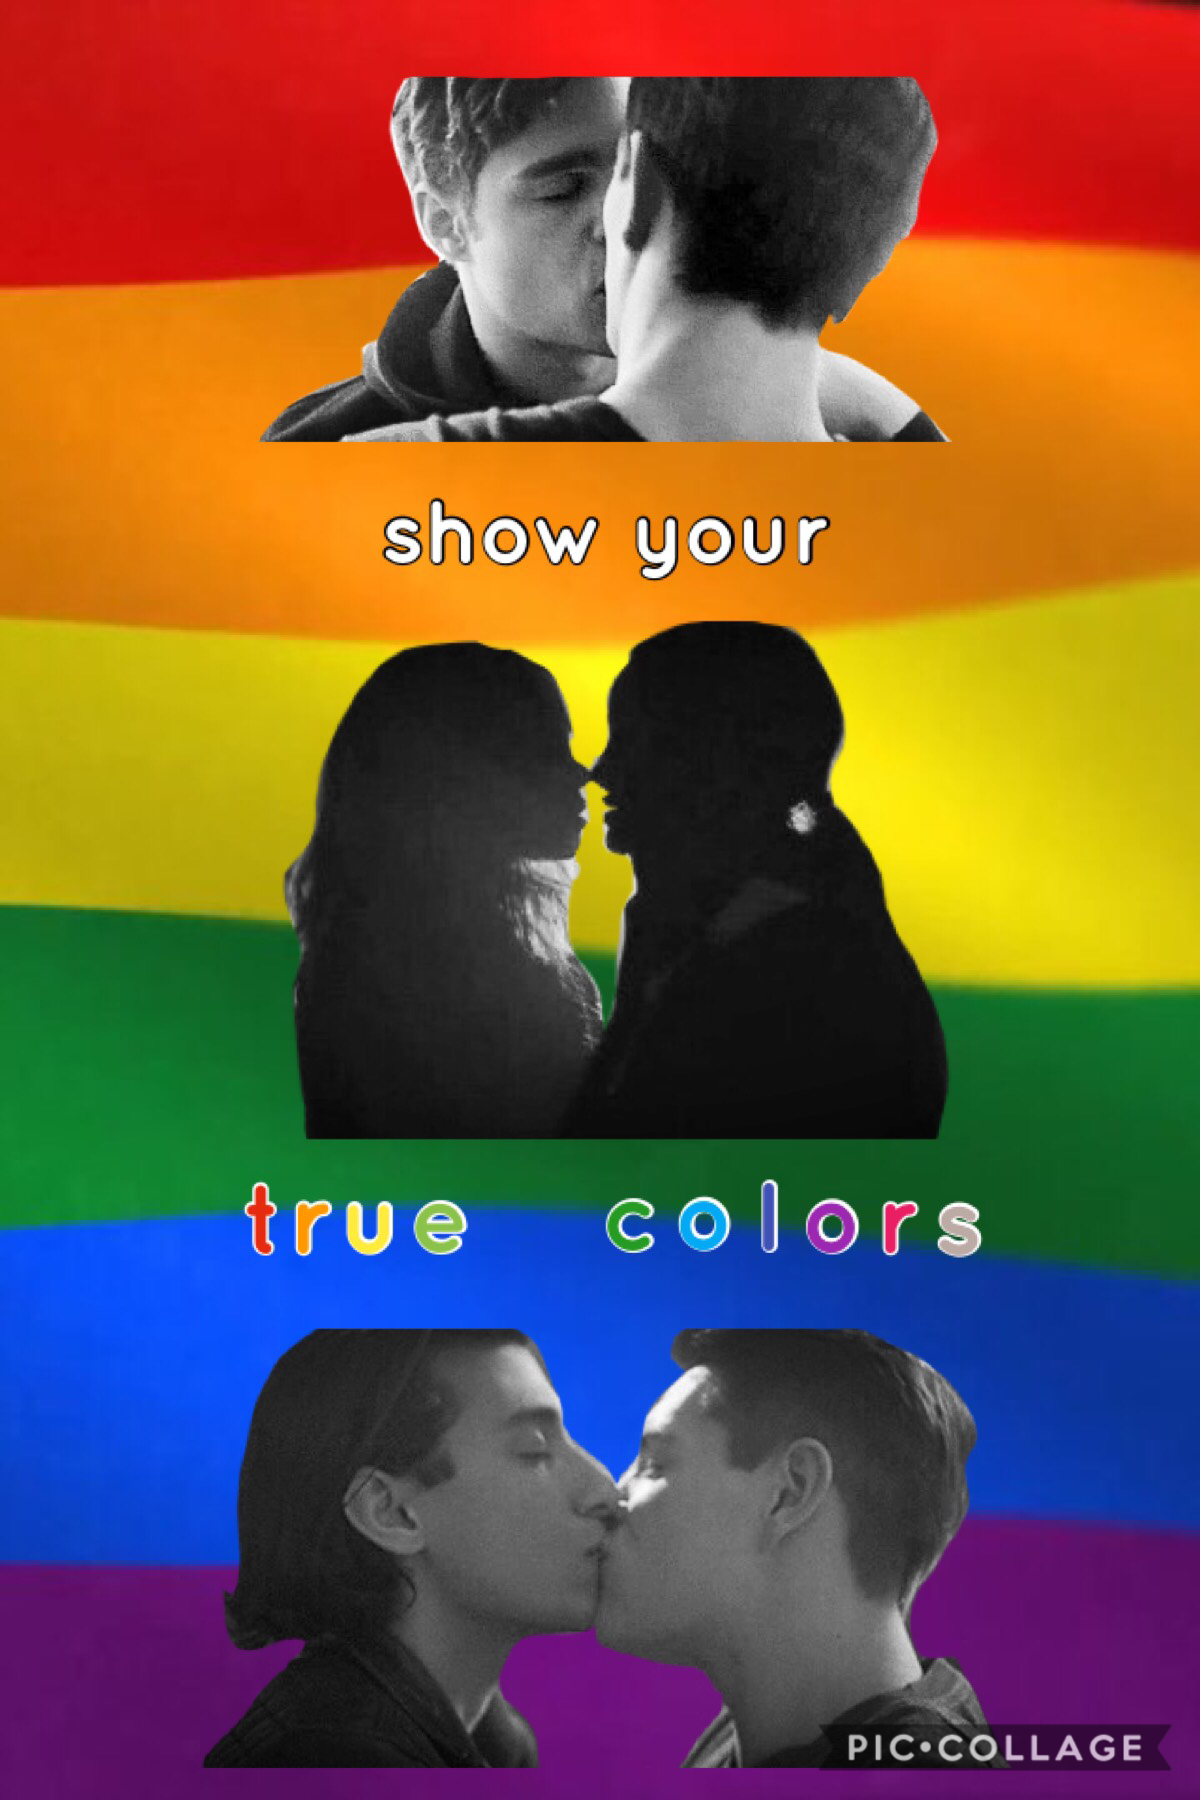 happy pride month!! ❤️🧡💛💚💙💜